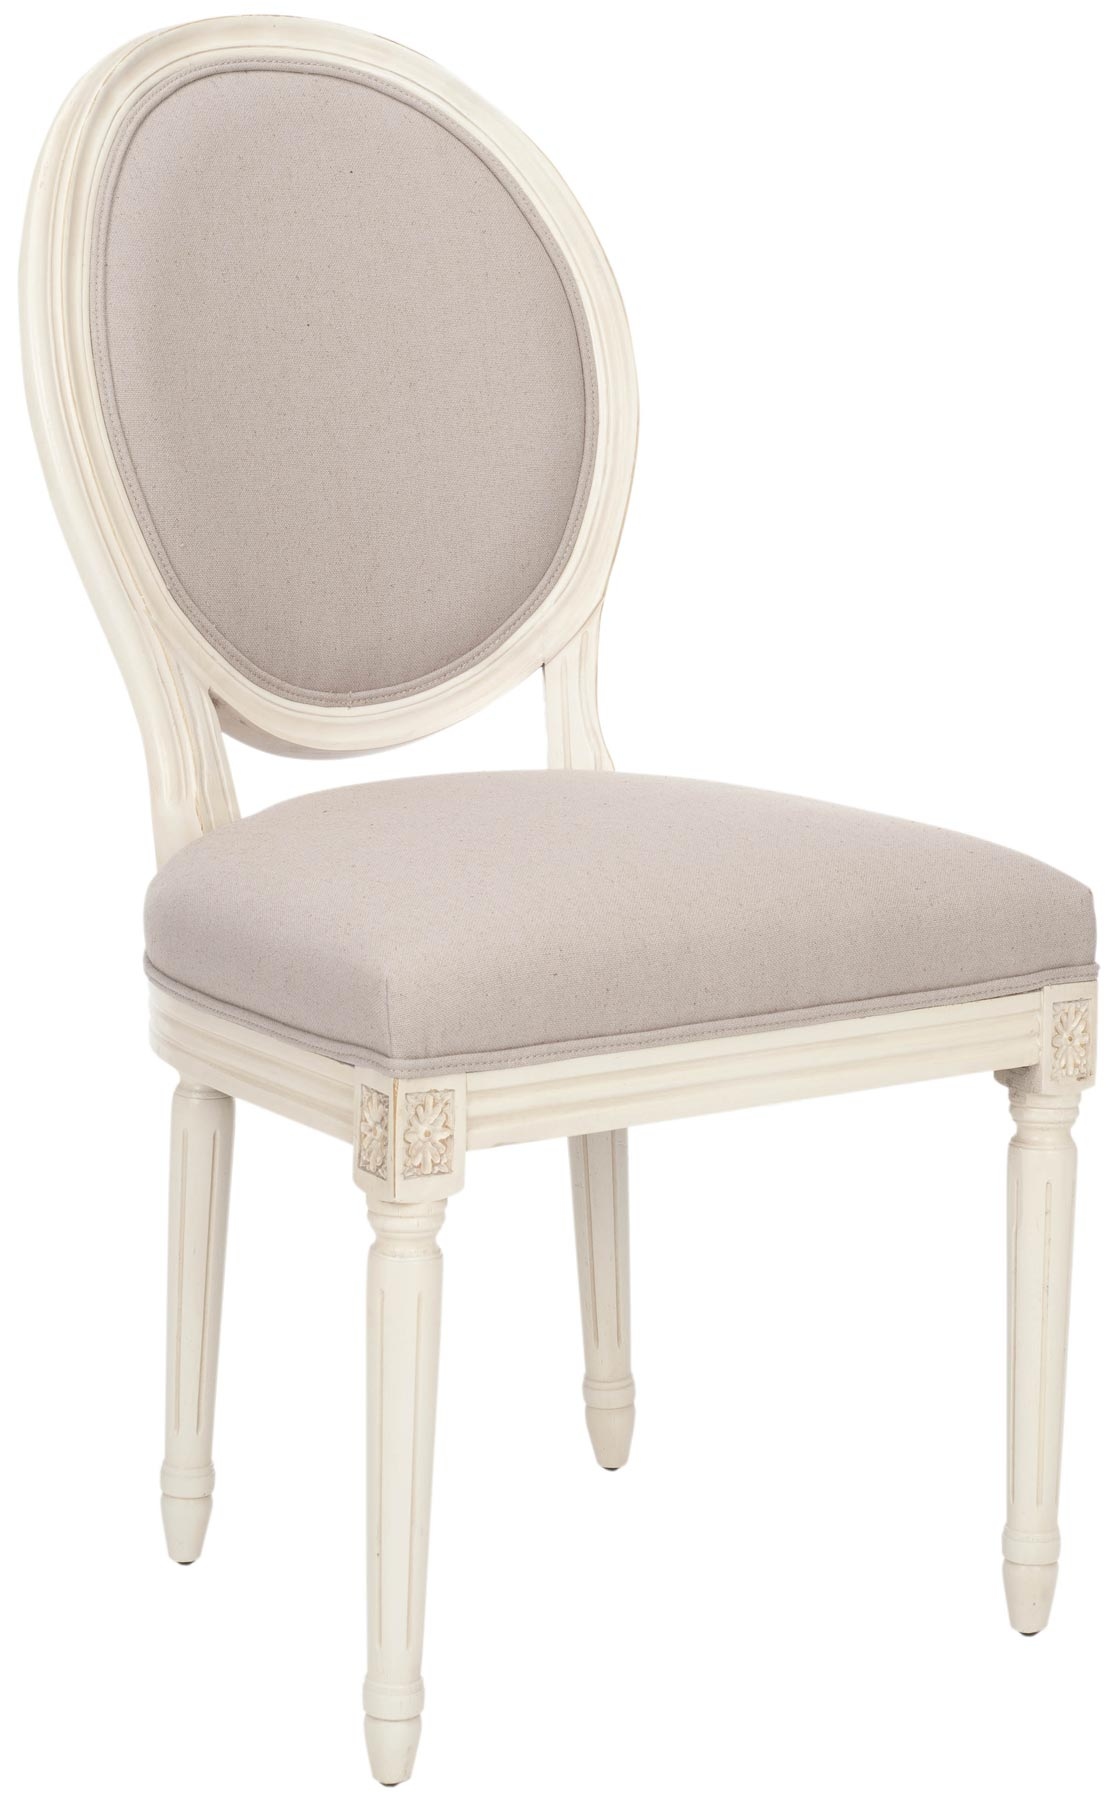 Safavieh MCR4517C PARIS OVAL SIDE CHAIR SET OF TWO $801 00